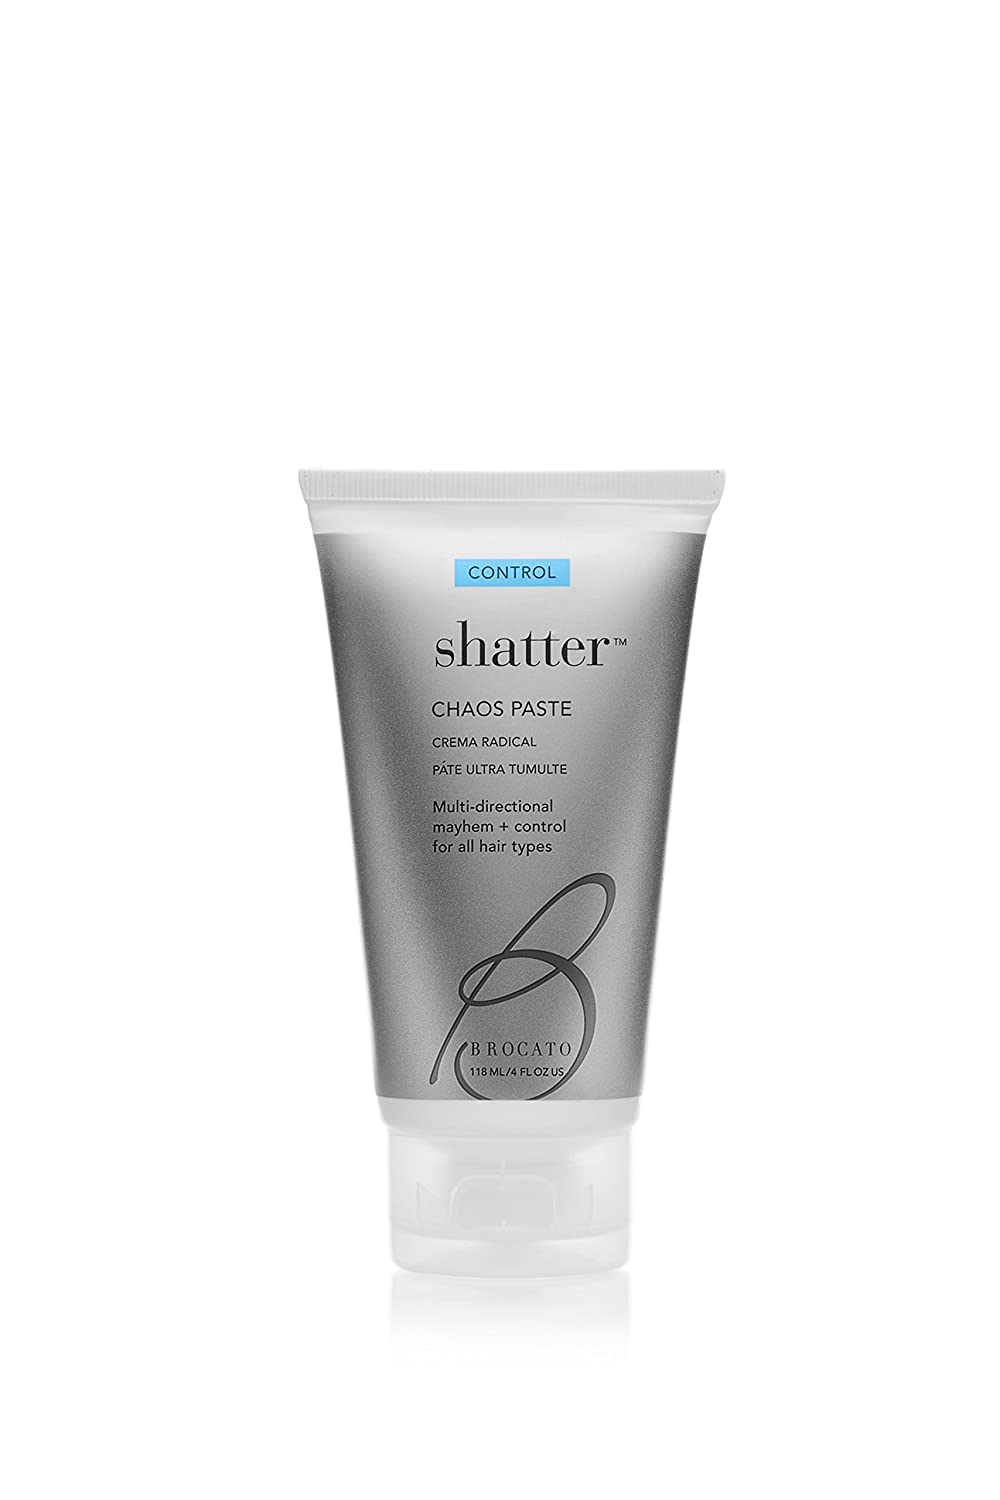 Brocato Shatter Chaos Hair Paste: Molding Styling Gel Products for Men & Women with All Hair Types - Shaping & Sculpting Mousse for Salon Quality Hairdos - Apply to Wet, Dry or Heat Styled Hair - 4 Oz